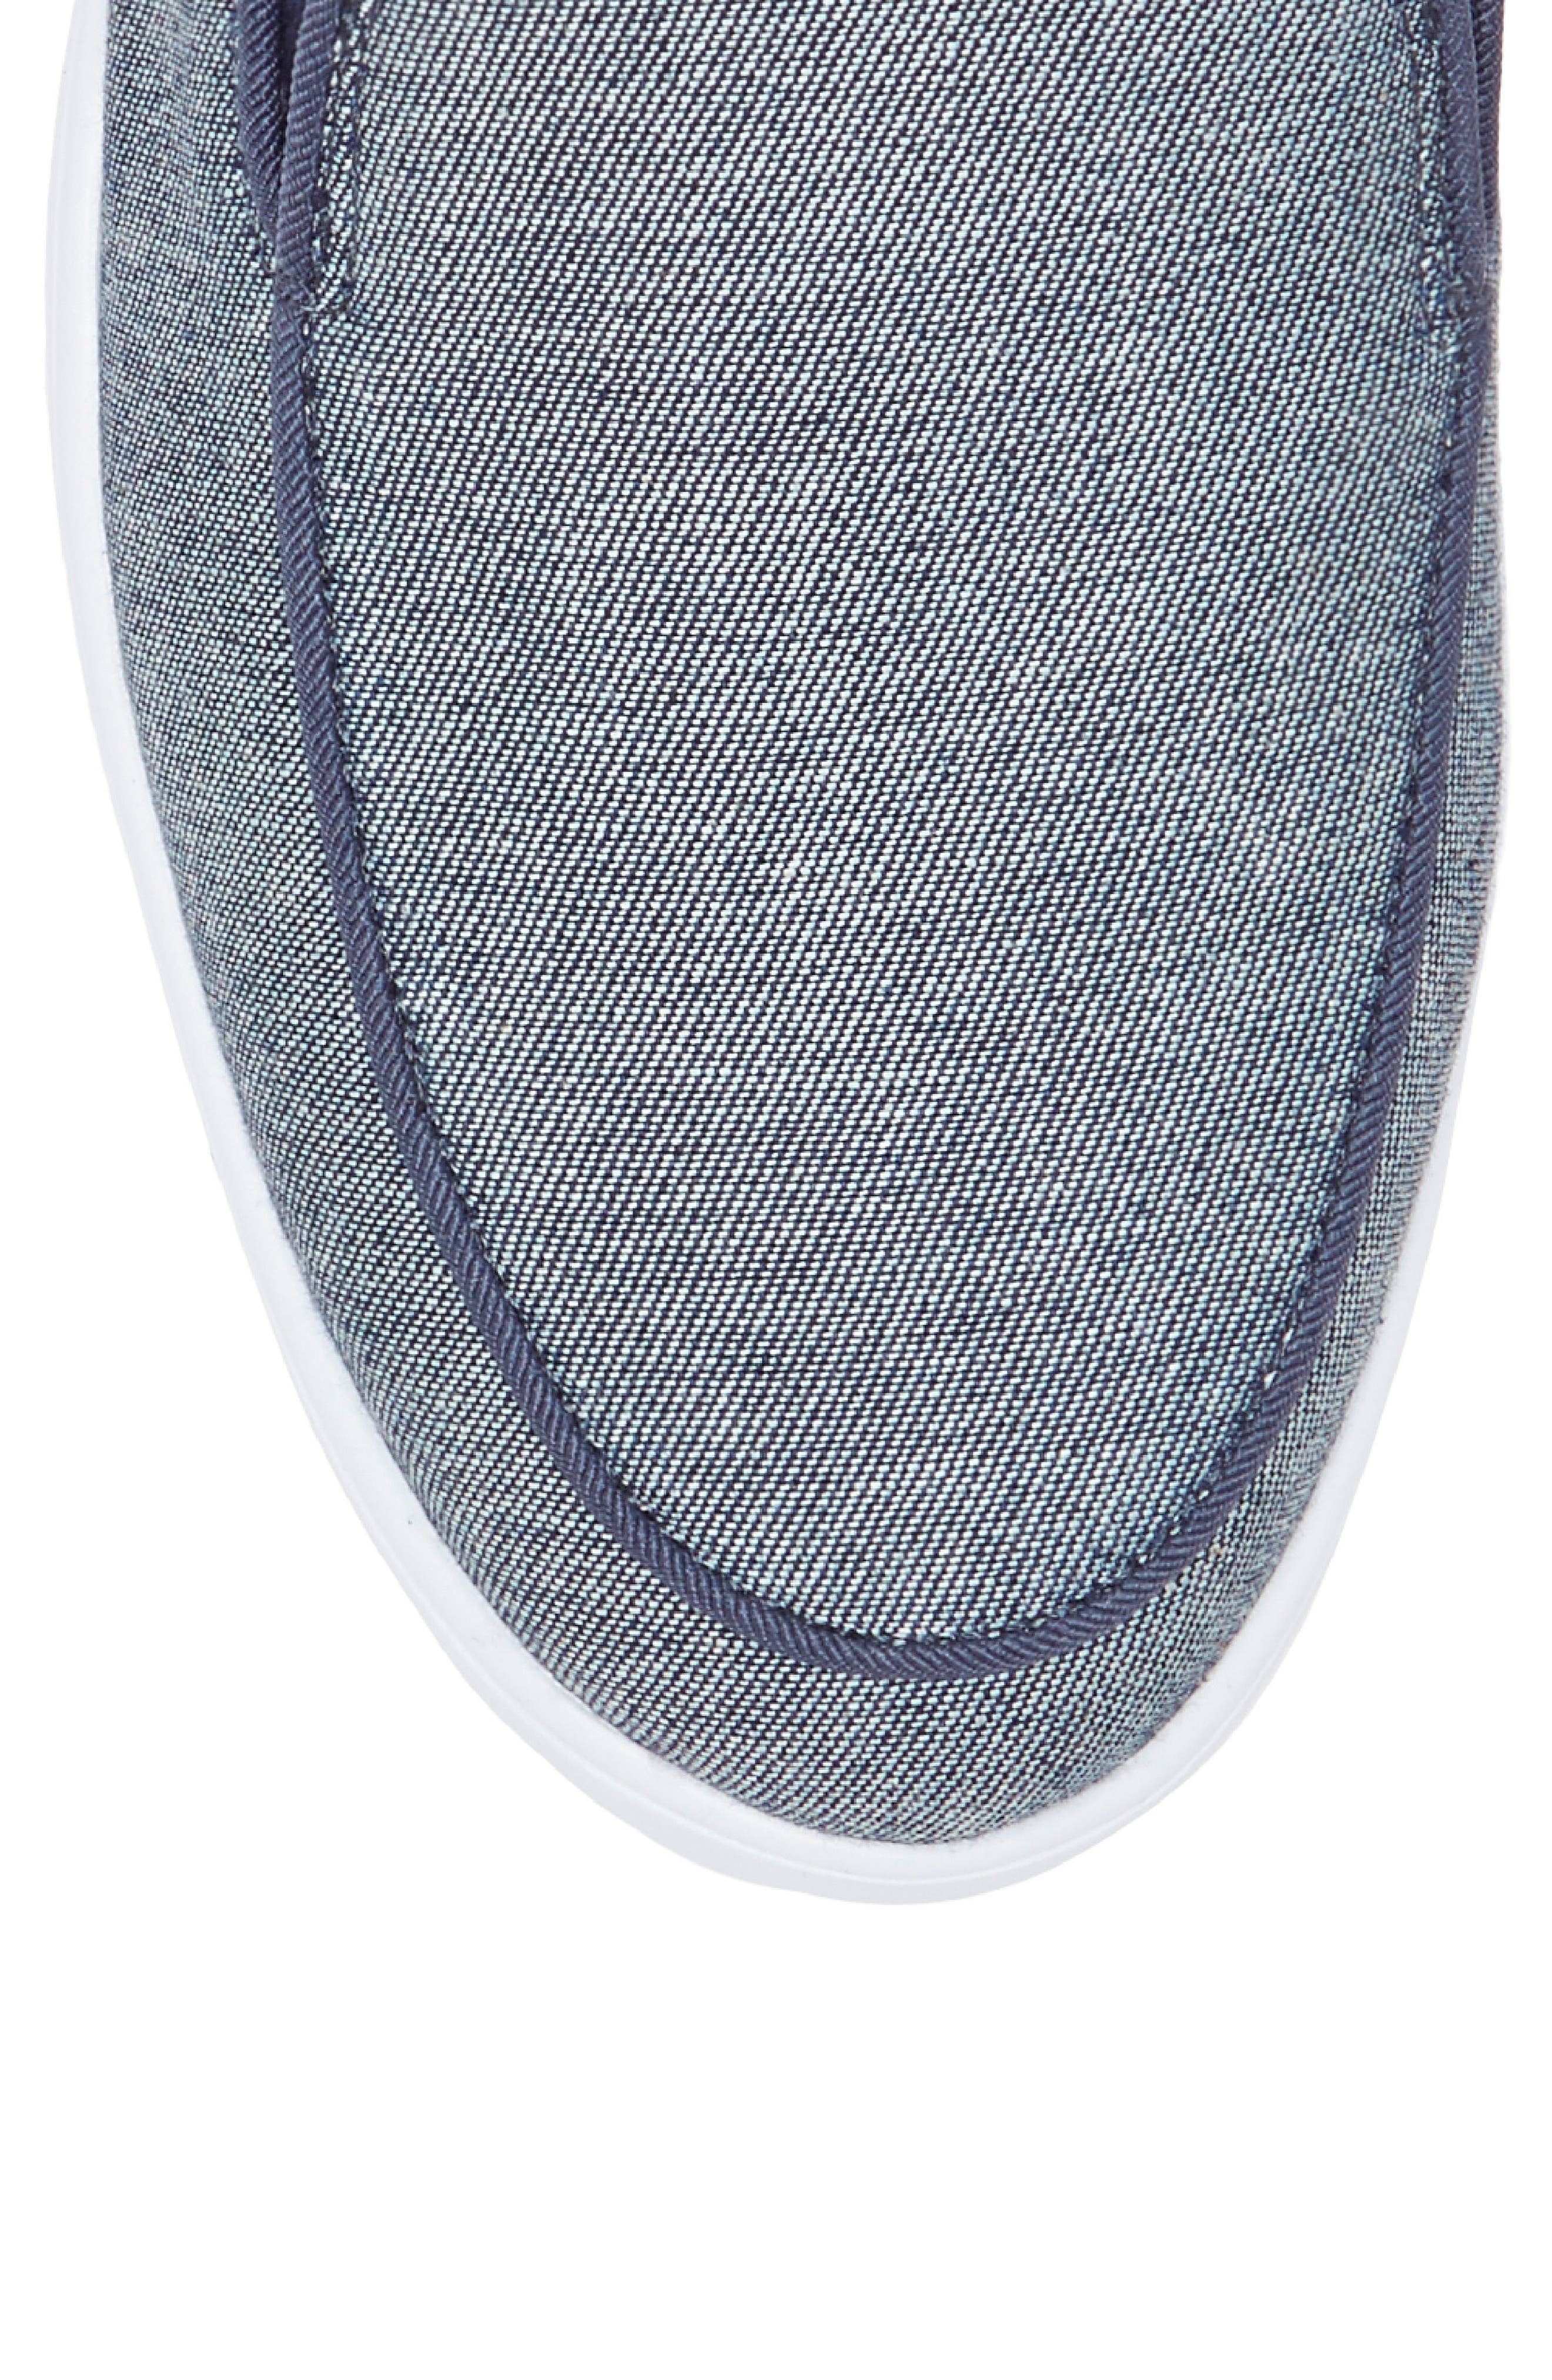 Antona Slip-On Sneaker,                             Alternate thumbnail 5, color,                             Blue Fabric